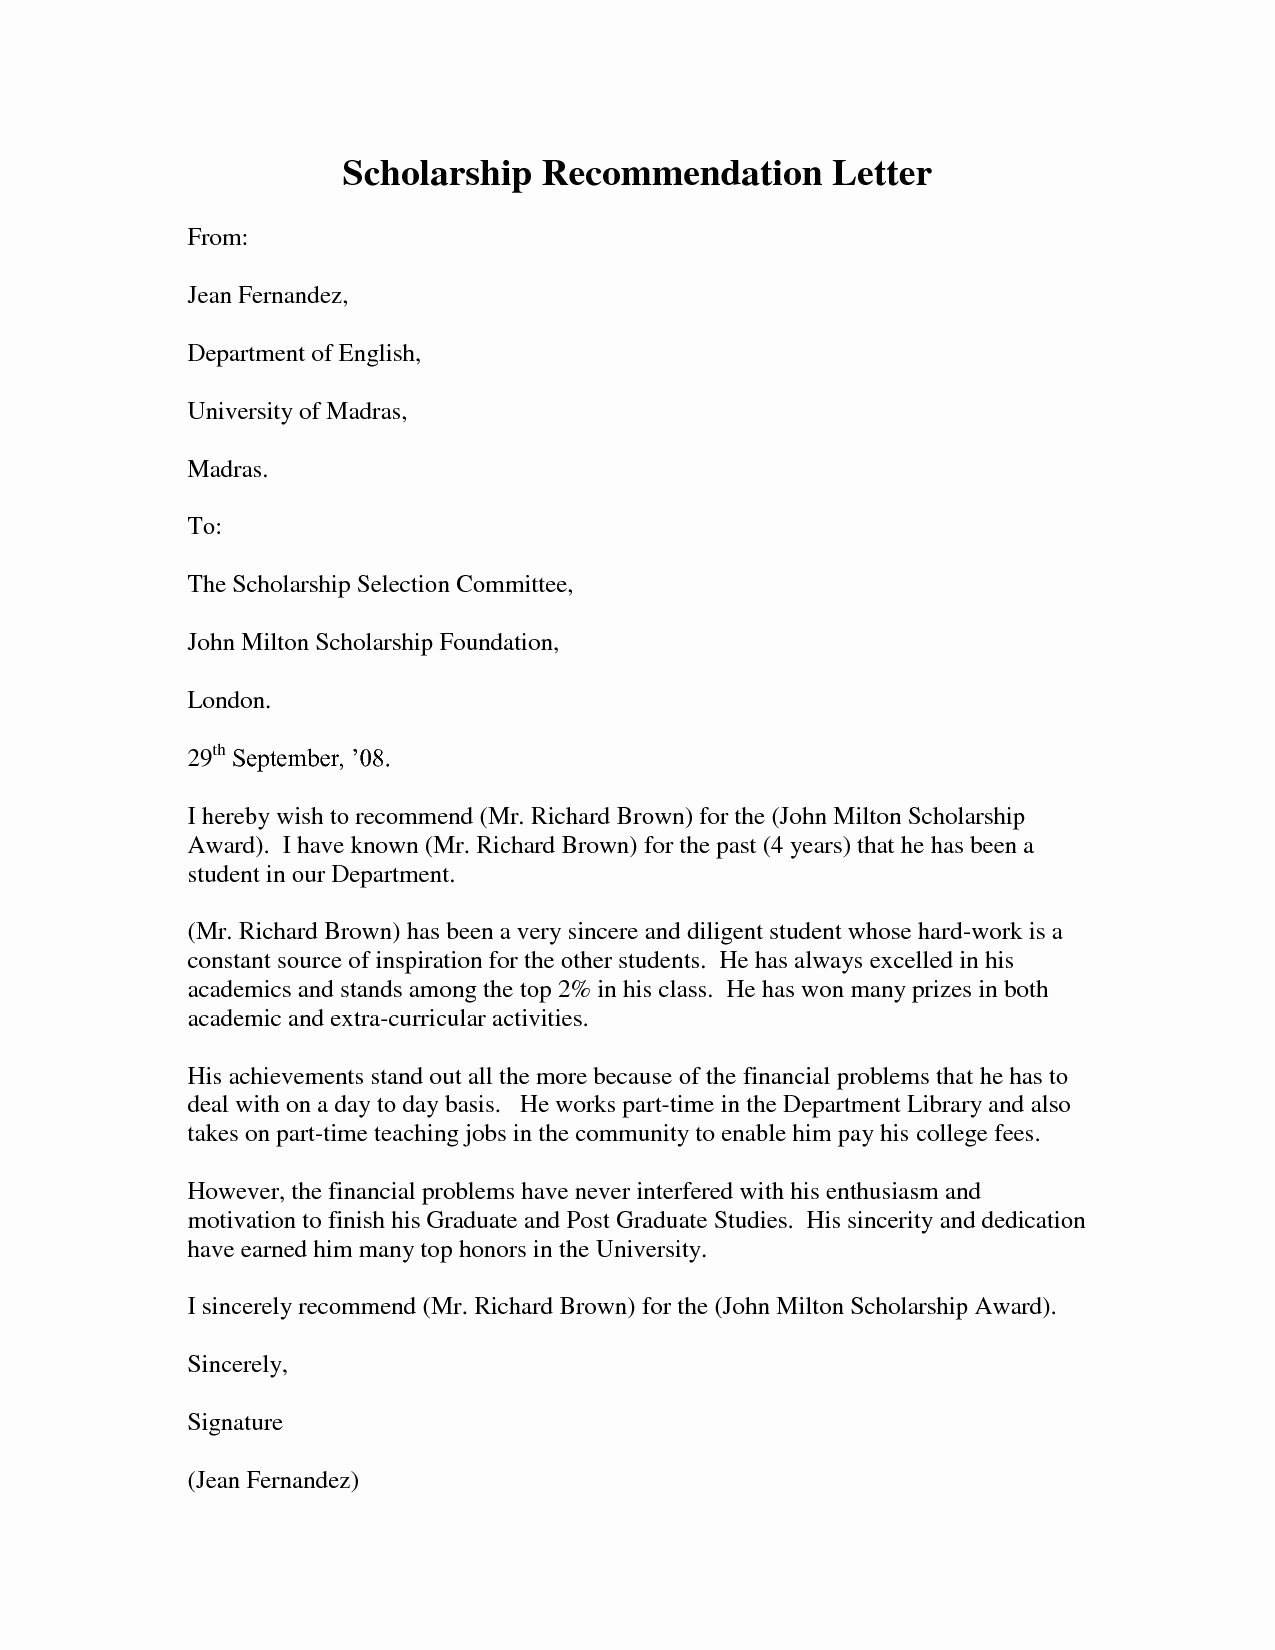 Pa School Letter Of Recommendation Unique Template for Writing A Letter Re Mendation for A